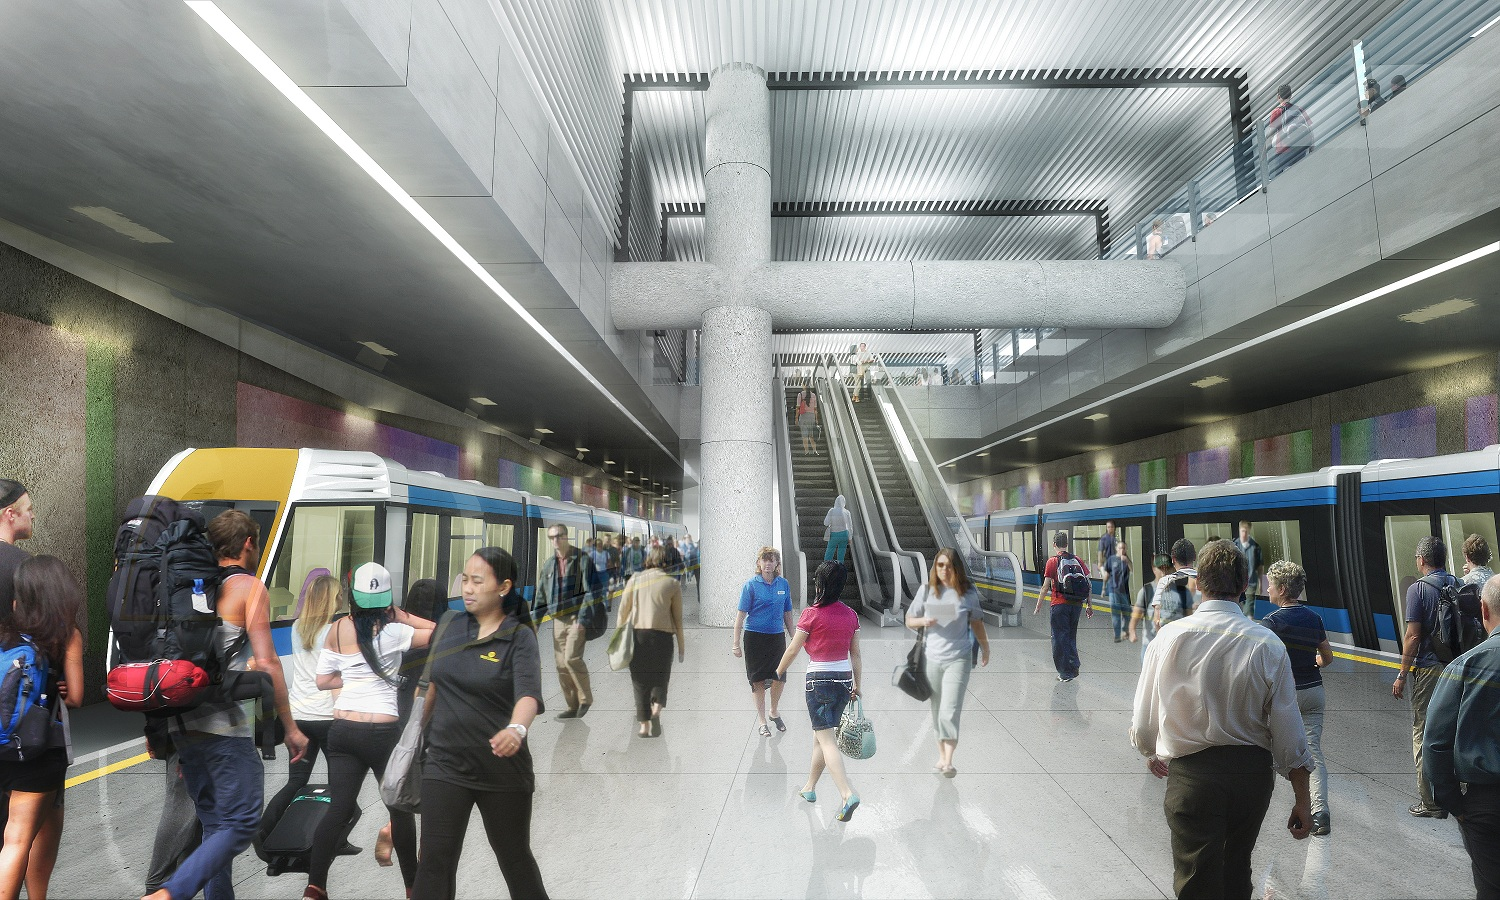 Visualisation of underground station